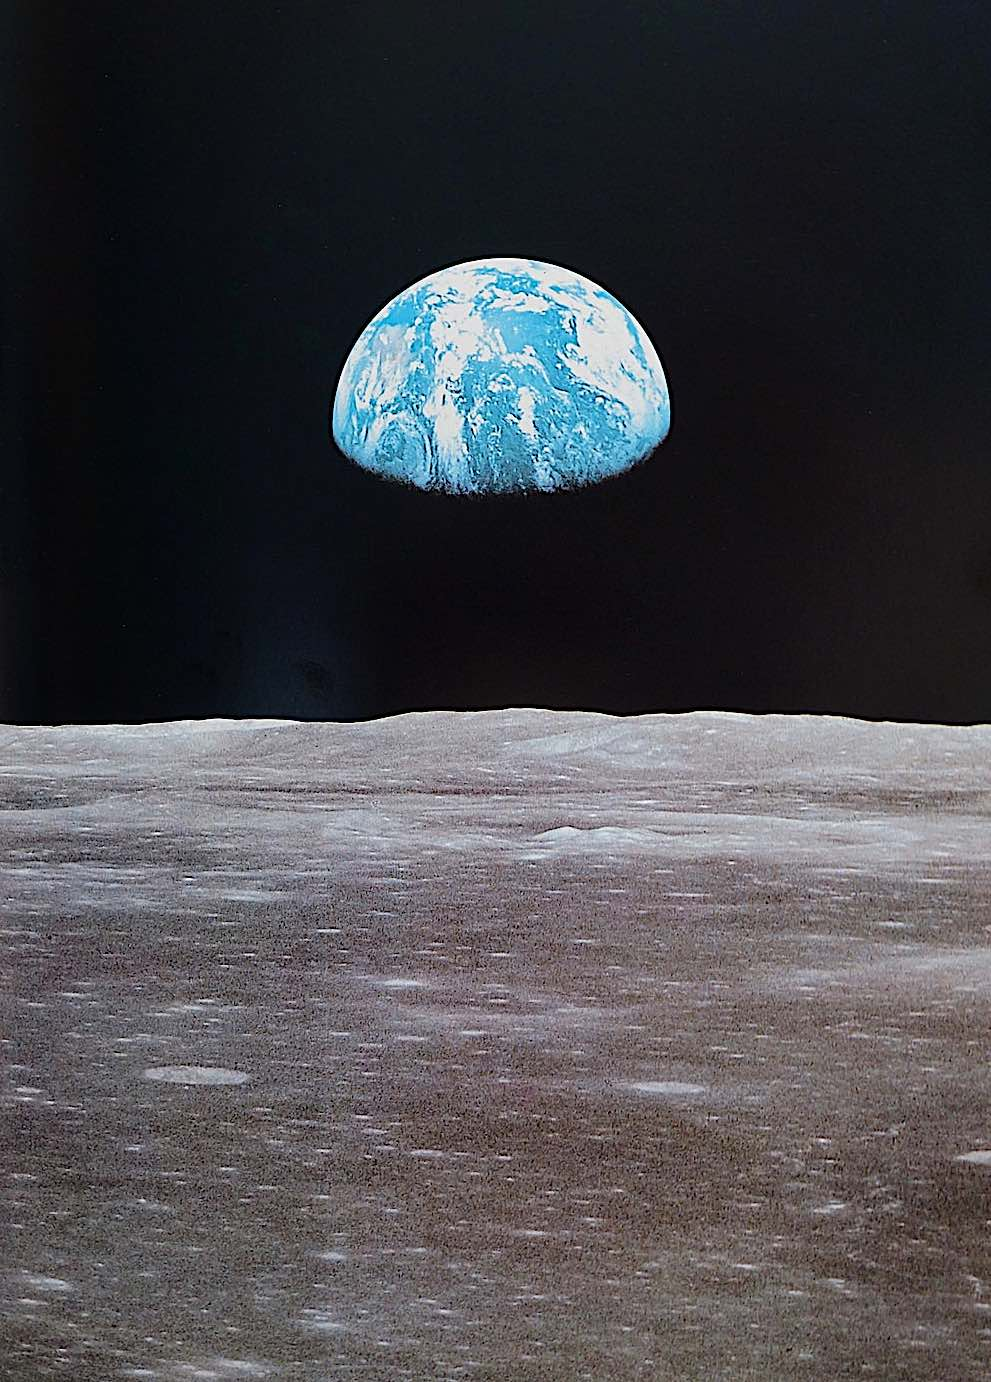 a photograph of the Earth seen from the moon